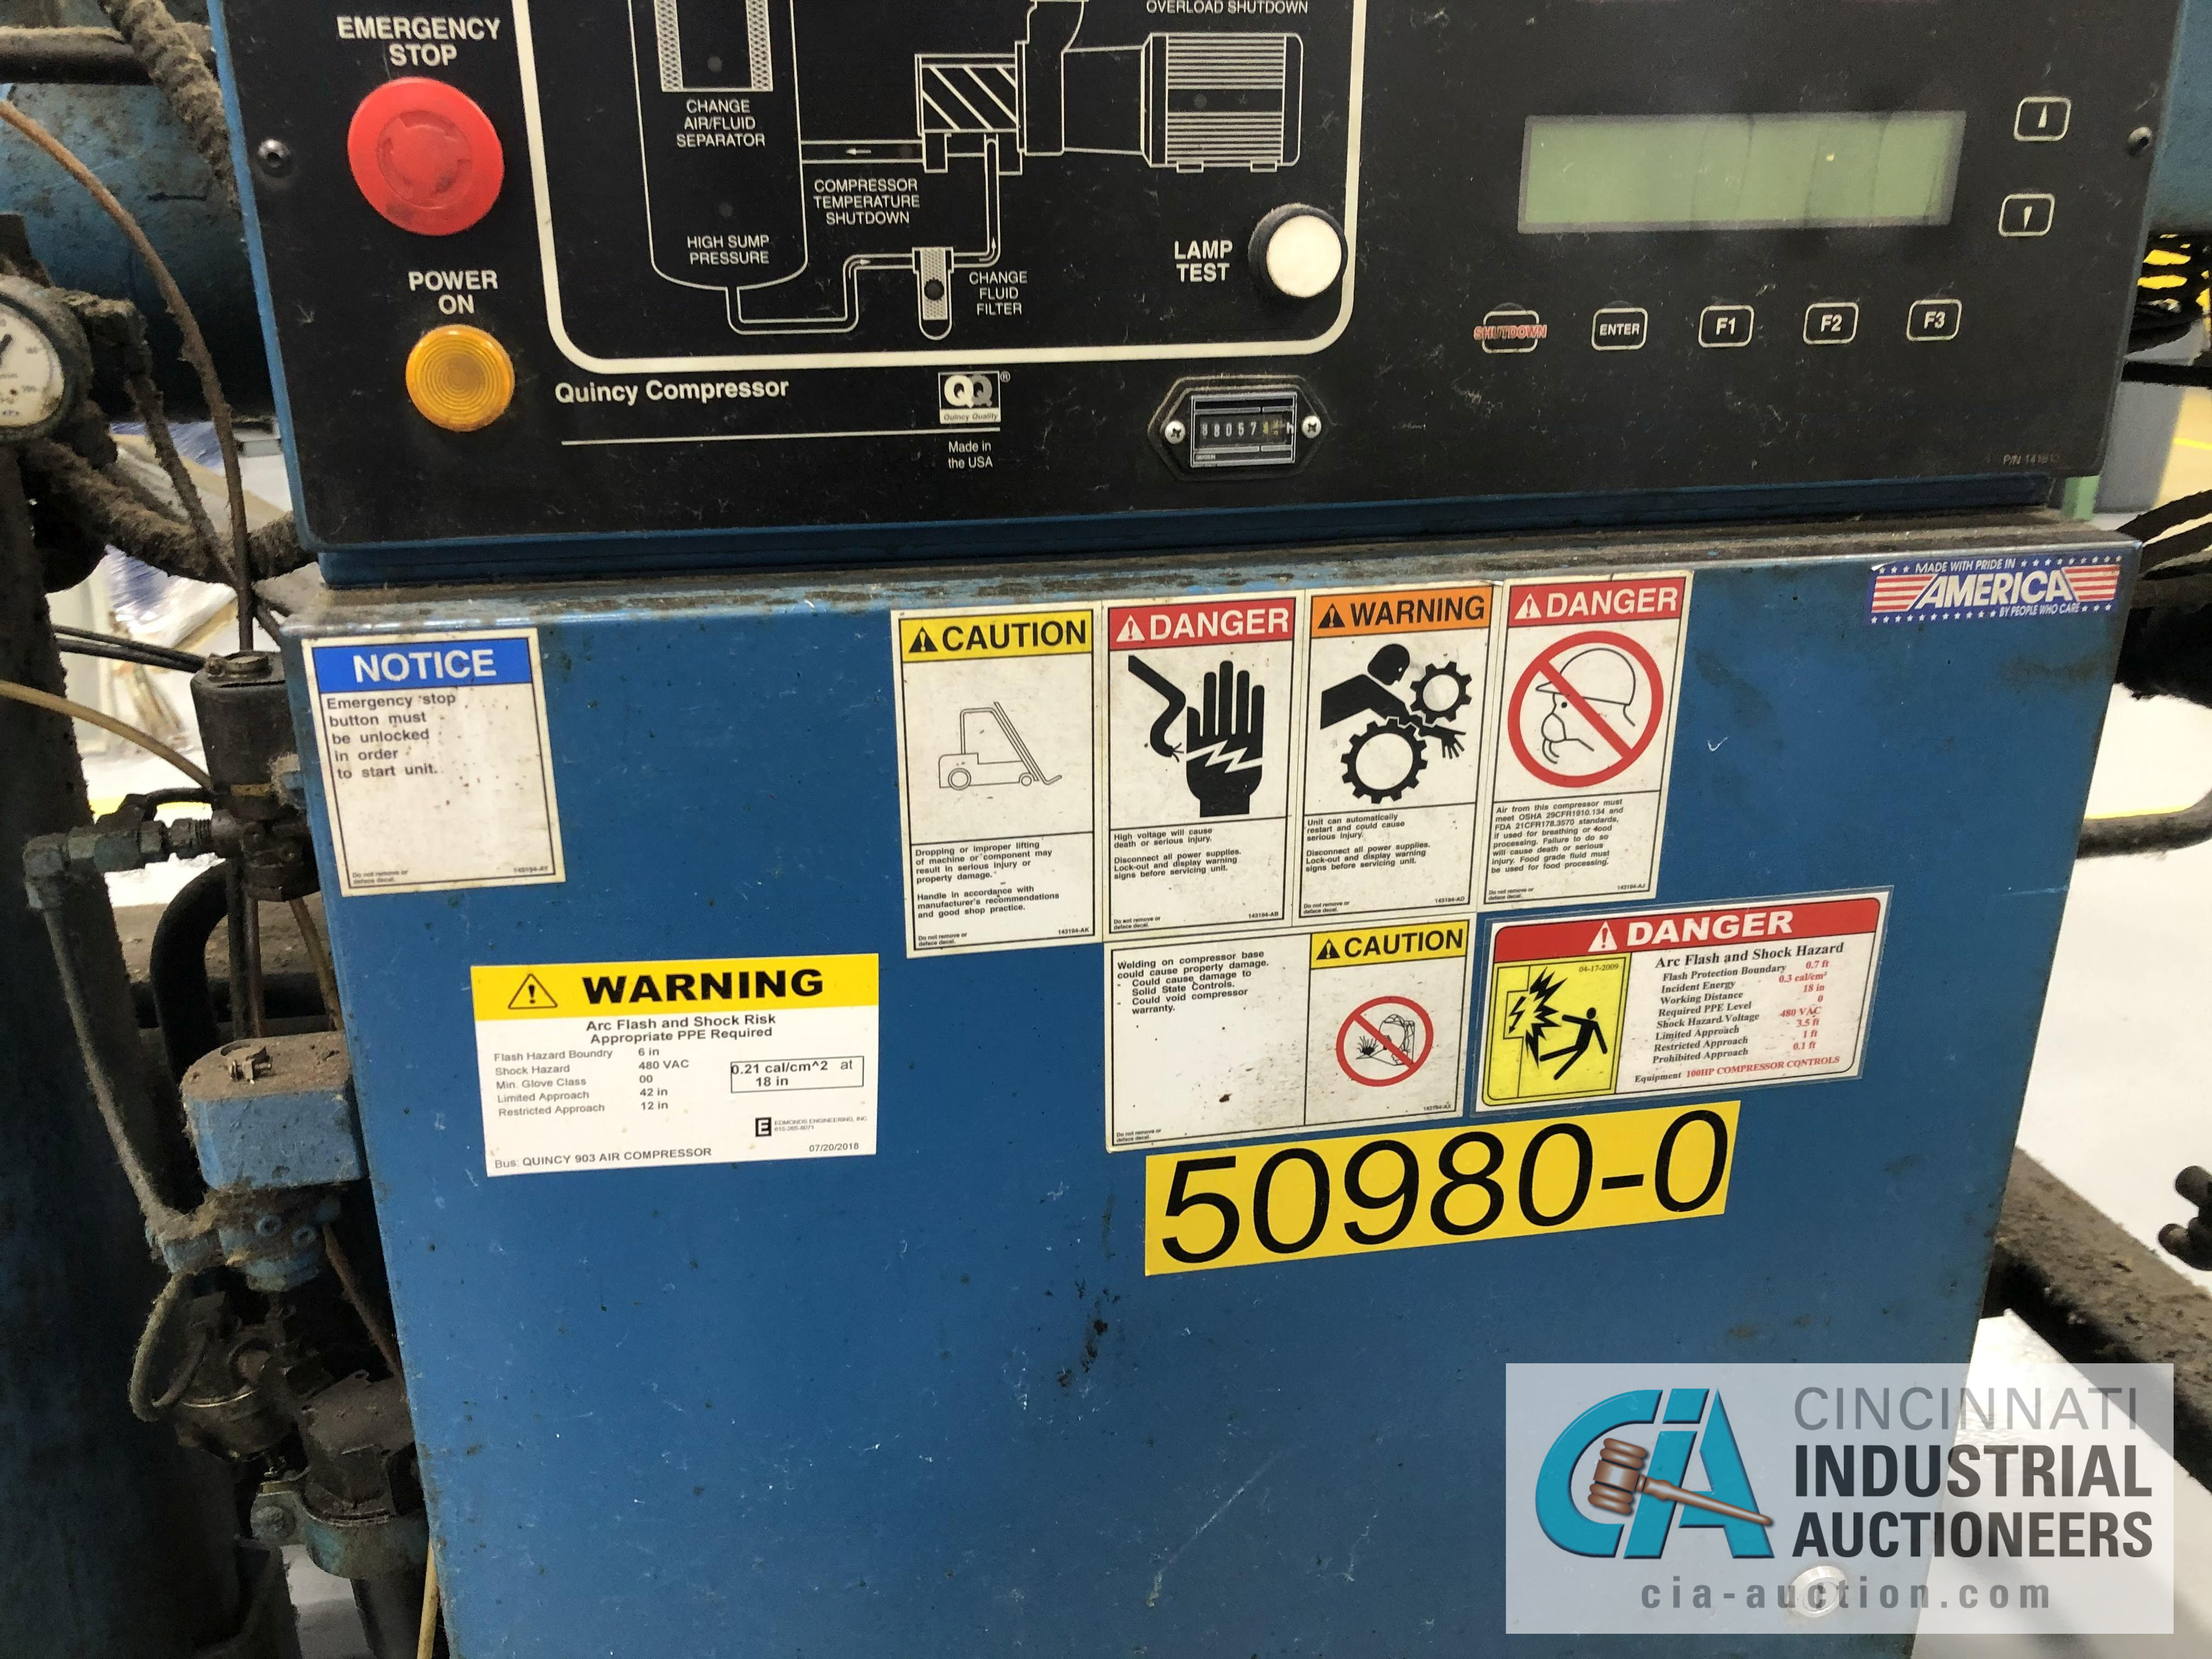 100 HP QUINCY MODEL QSI500-ANA31ED ROTARY SCREW AIR COMPRESSOR - $50.00 Rigging Fee Due to Onsite - Image 2 of 4